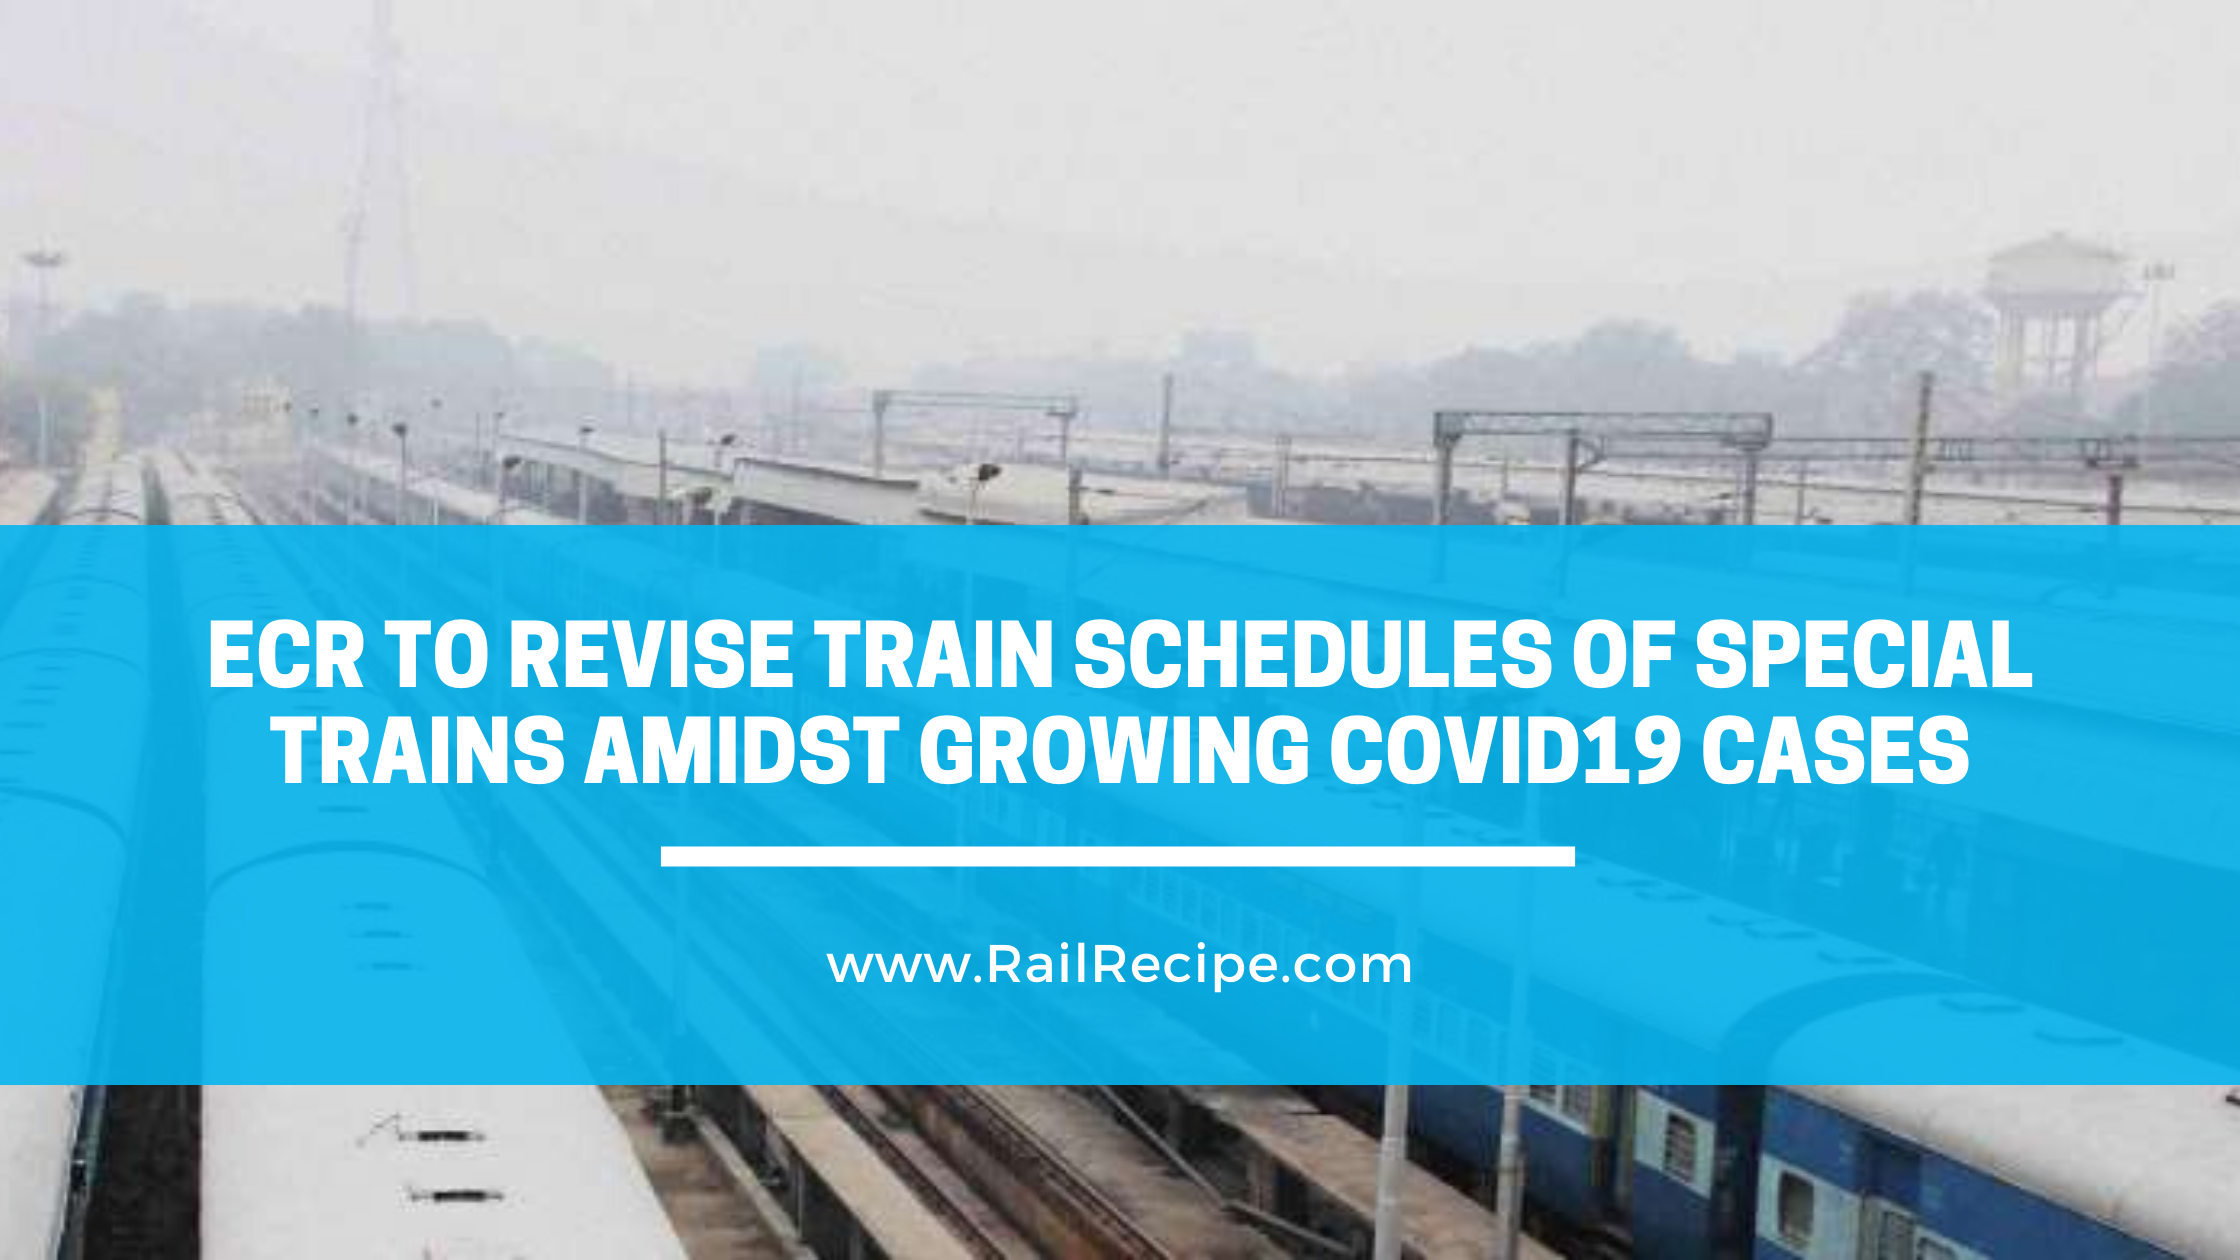 ECR to Revise Train Schedules of Special Trains Amidst Growing COVID19 Cases